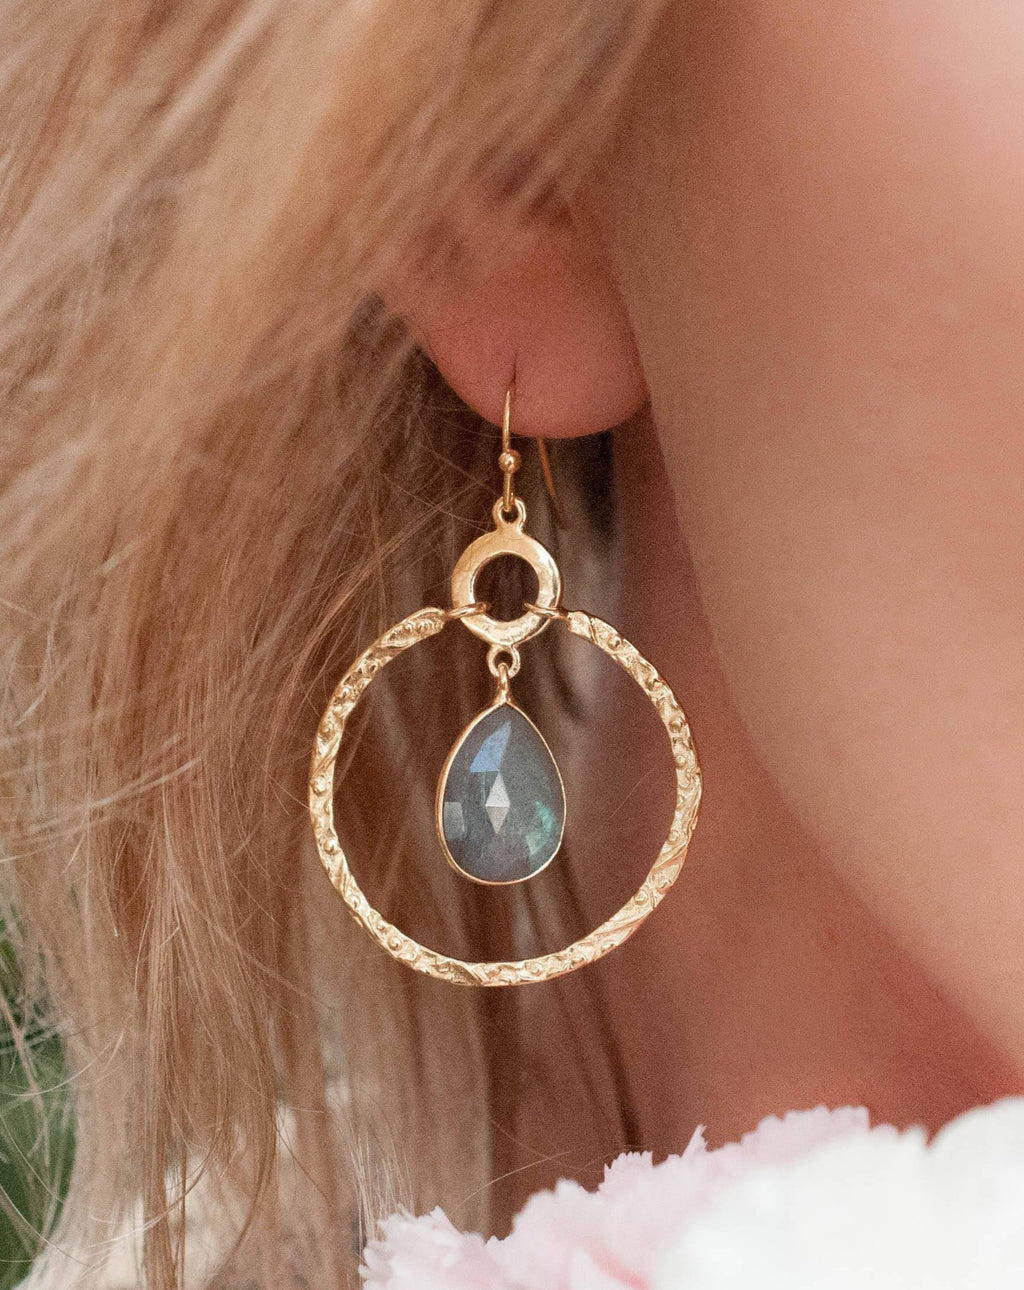 Chloe Earrings * Labradorite * Gold Plated 18k * BJE020